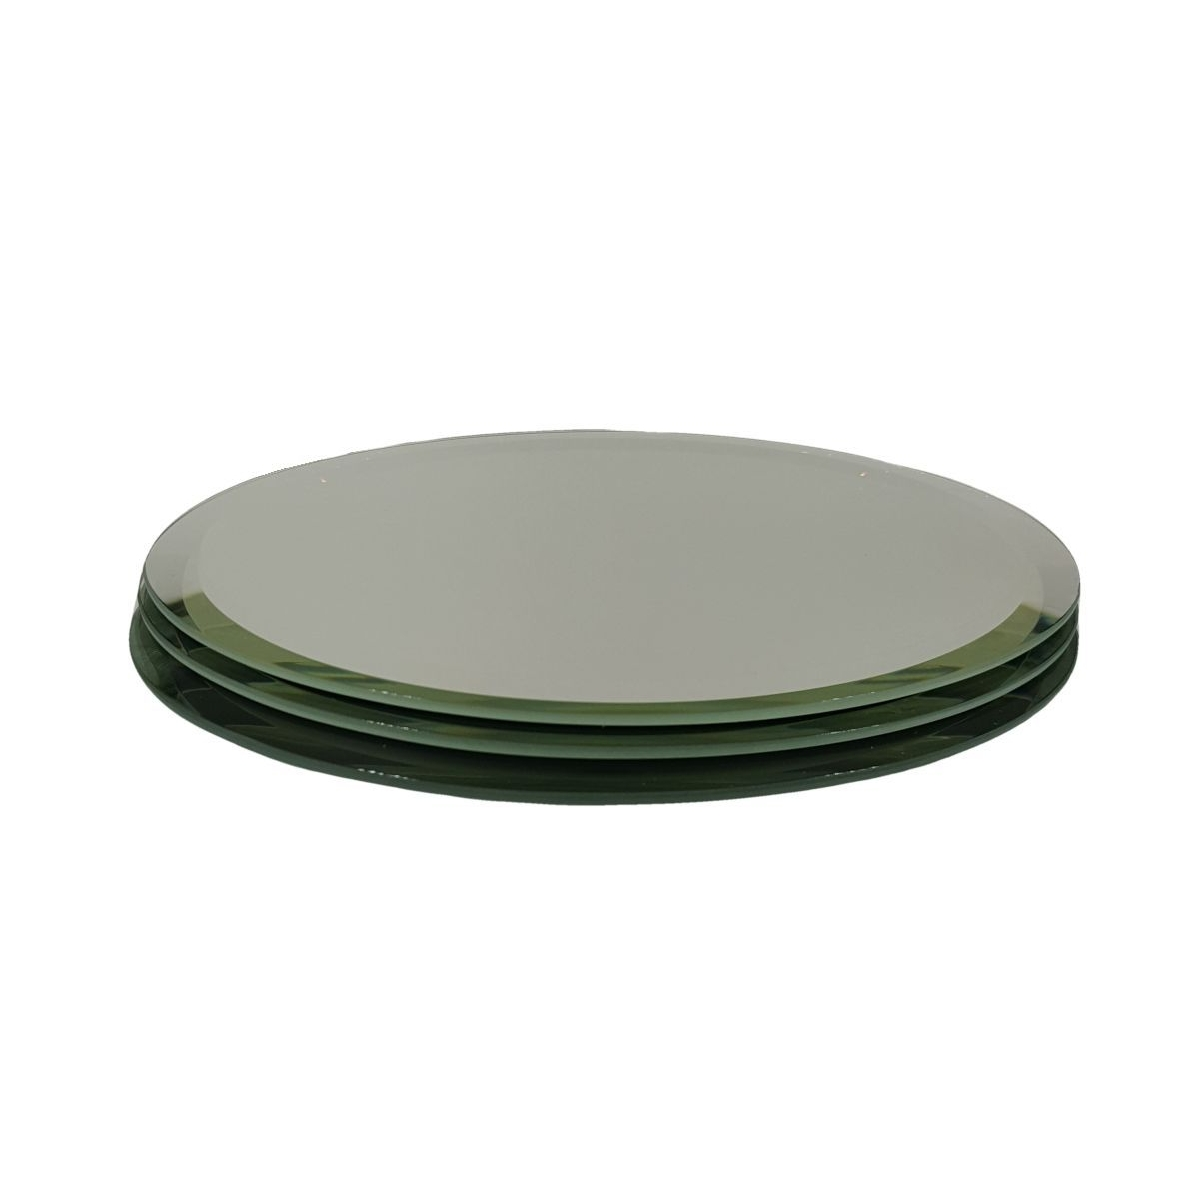 Oval Mirrors Collectibles or Decorative Purpose, 3MM Bevel